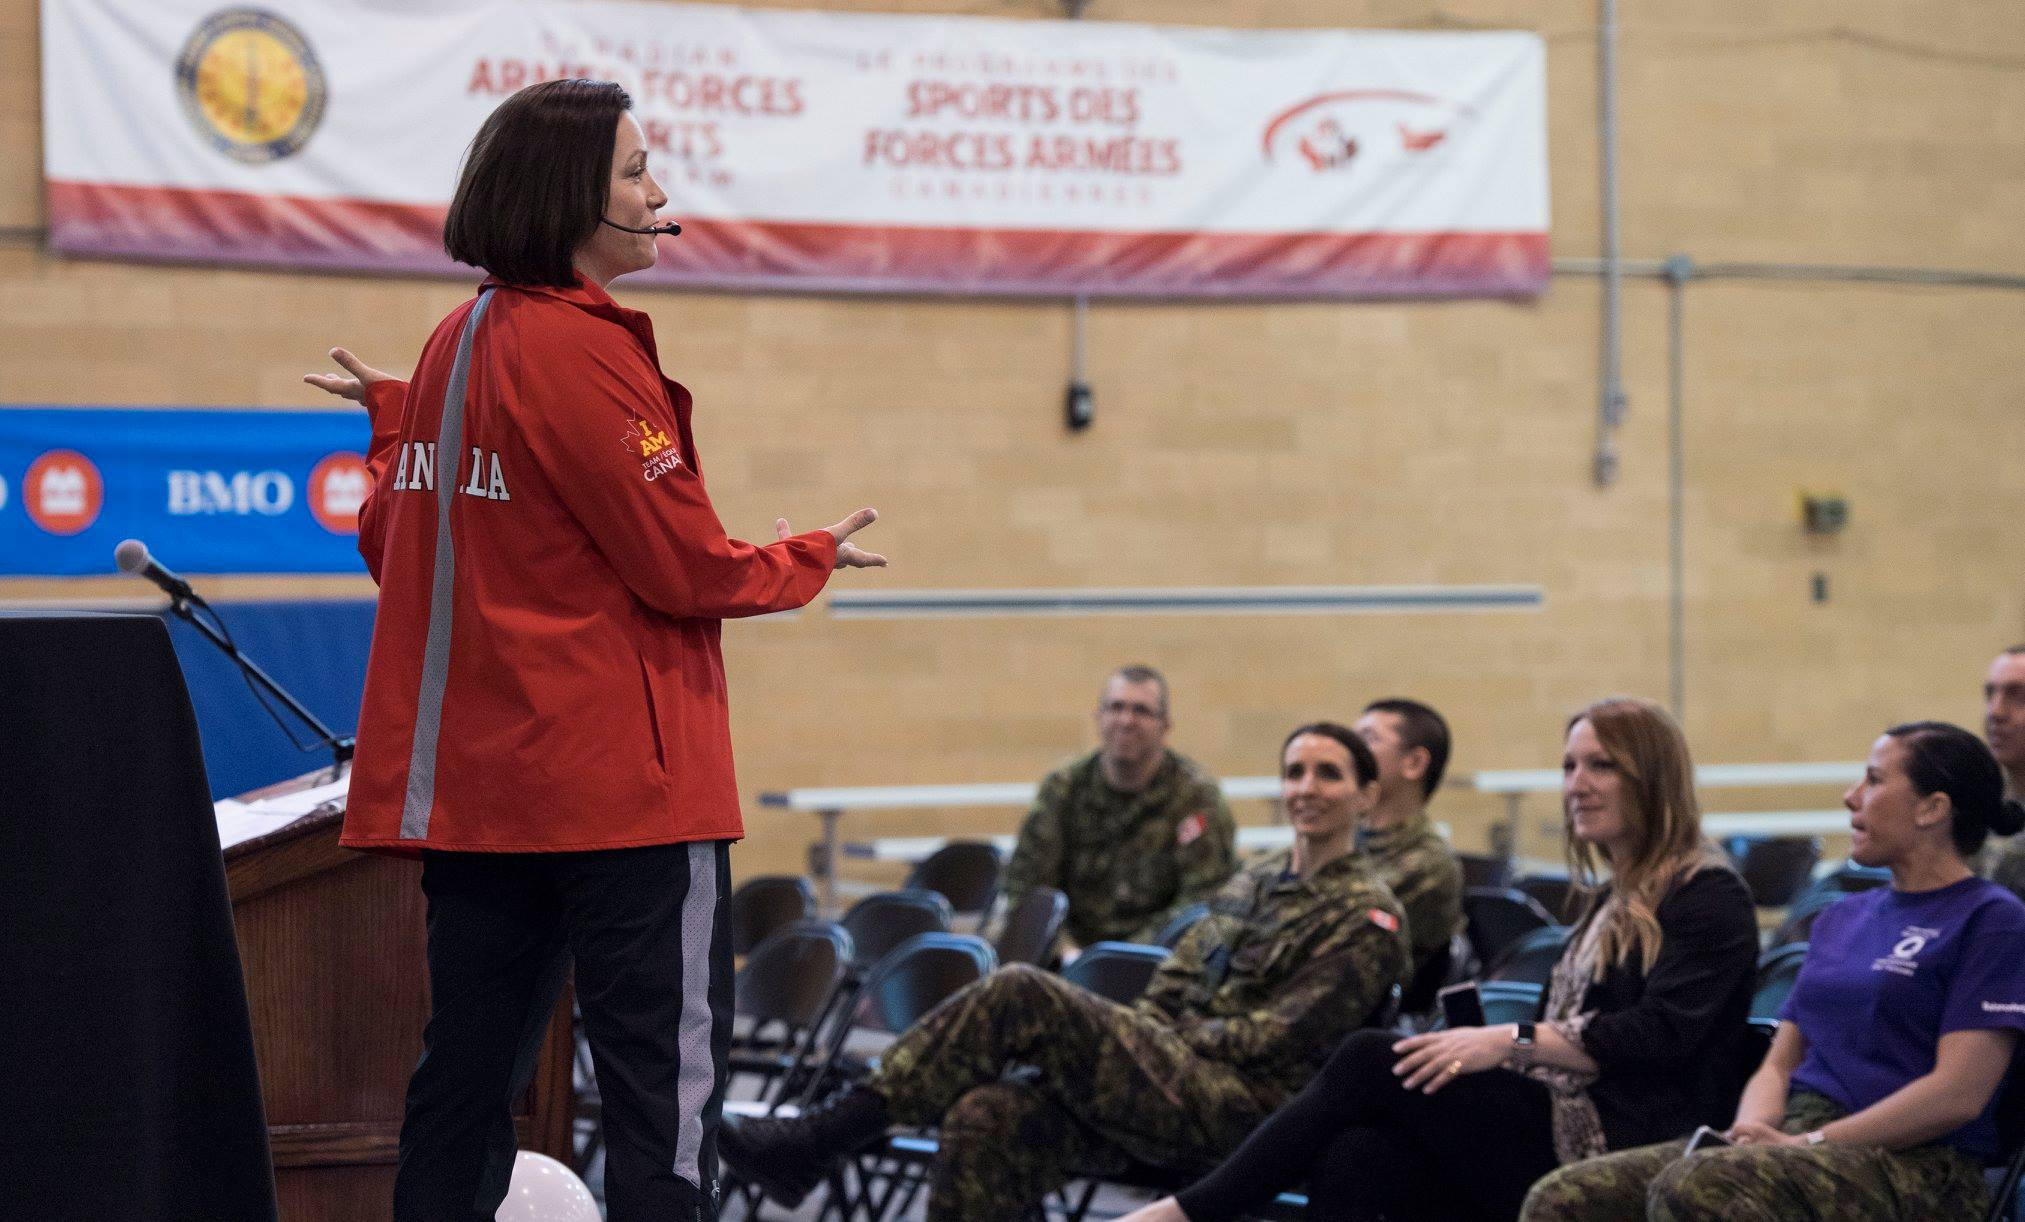 Canadian Forces IWD speaker